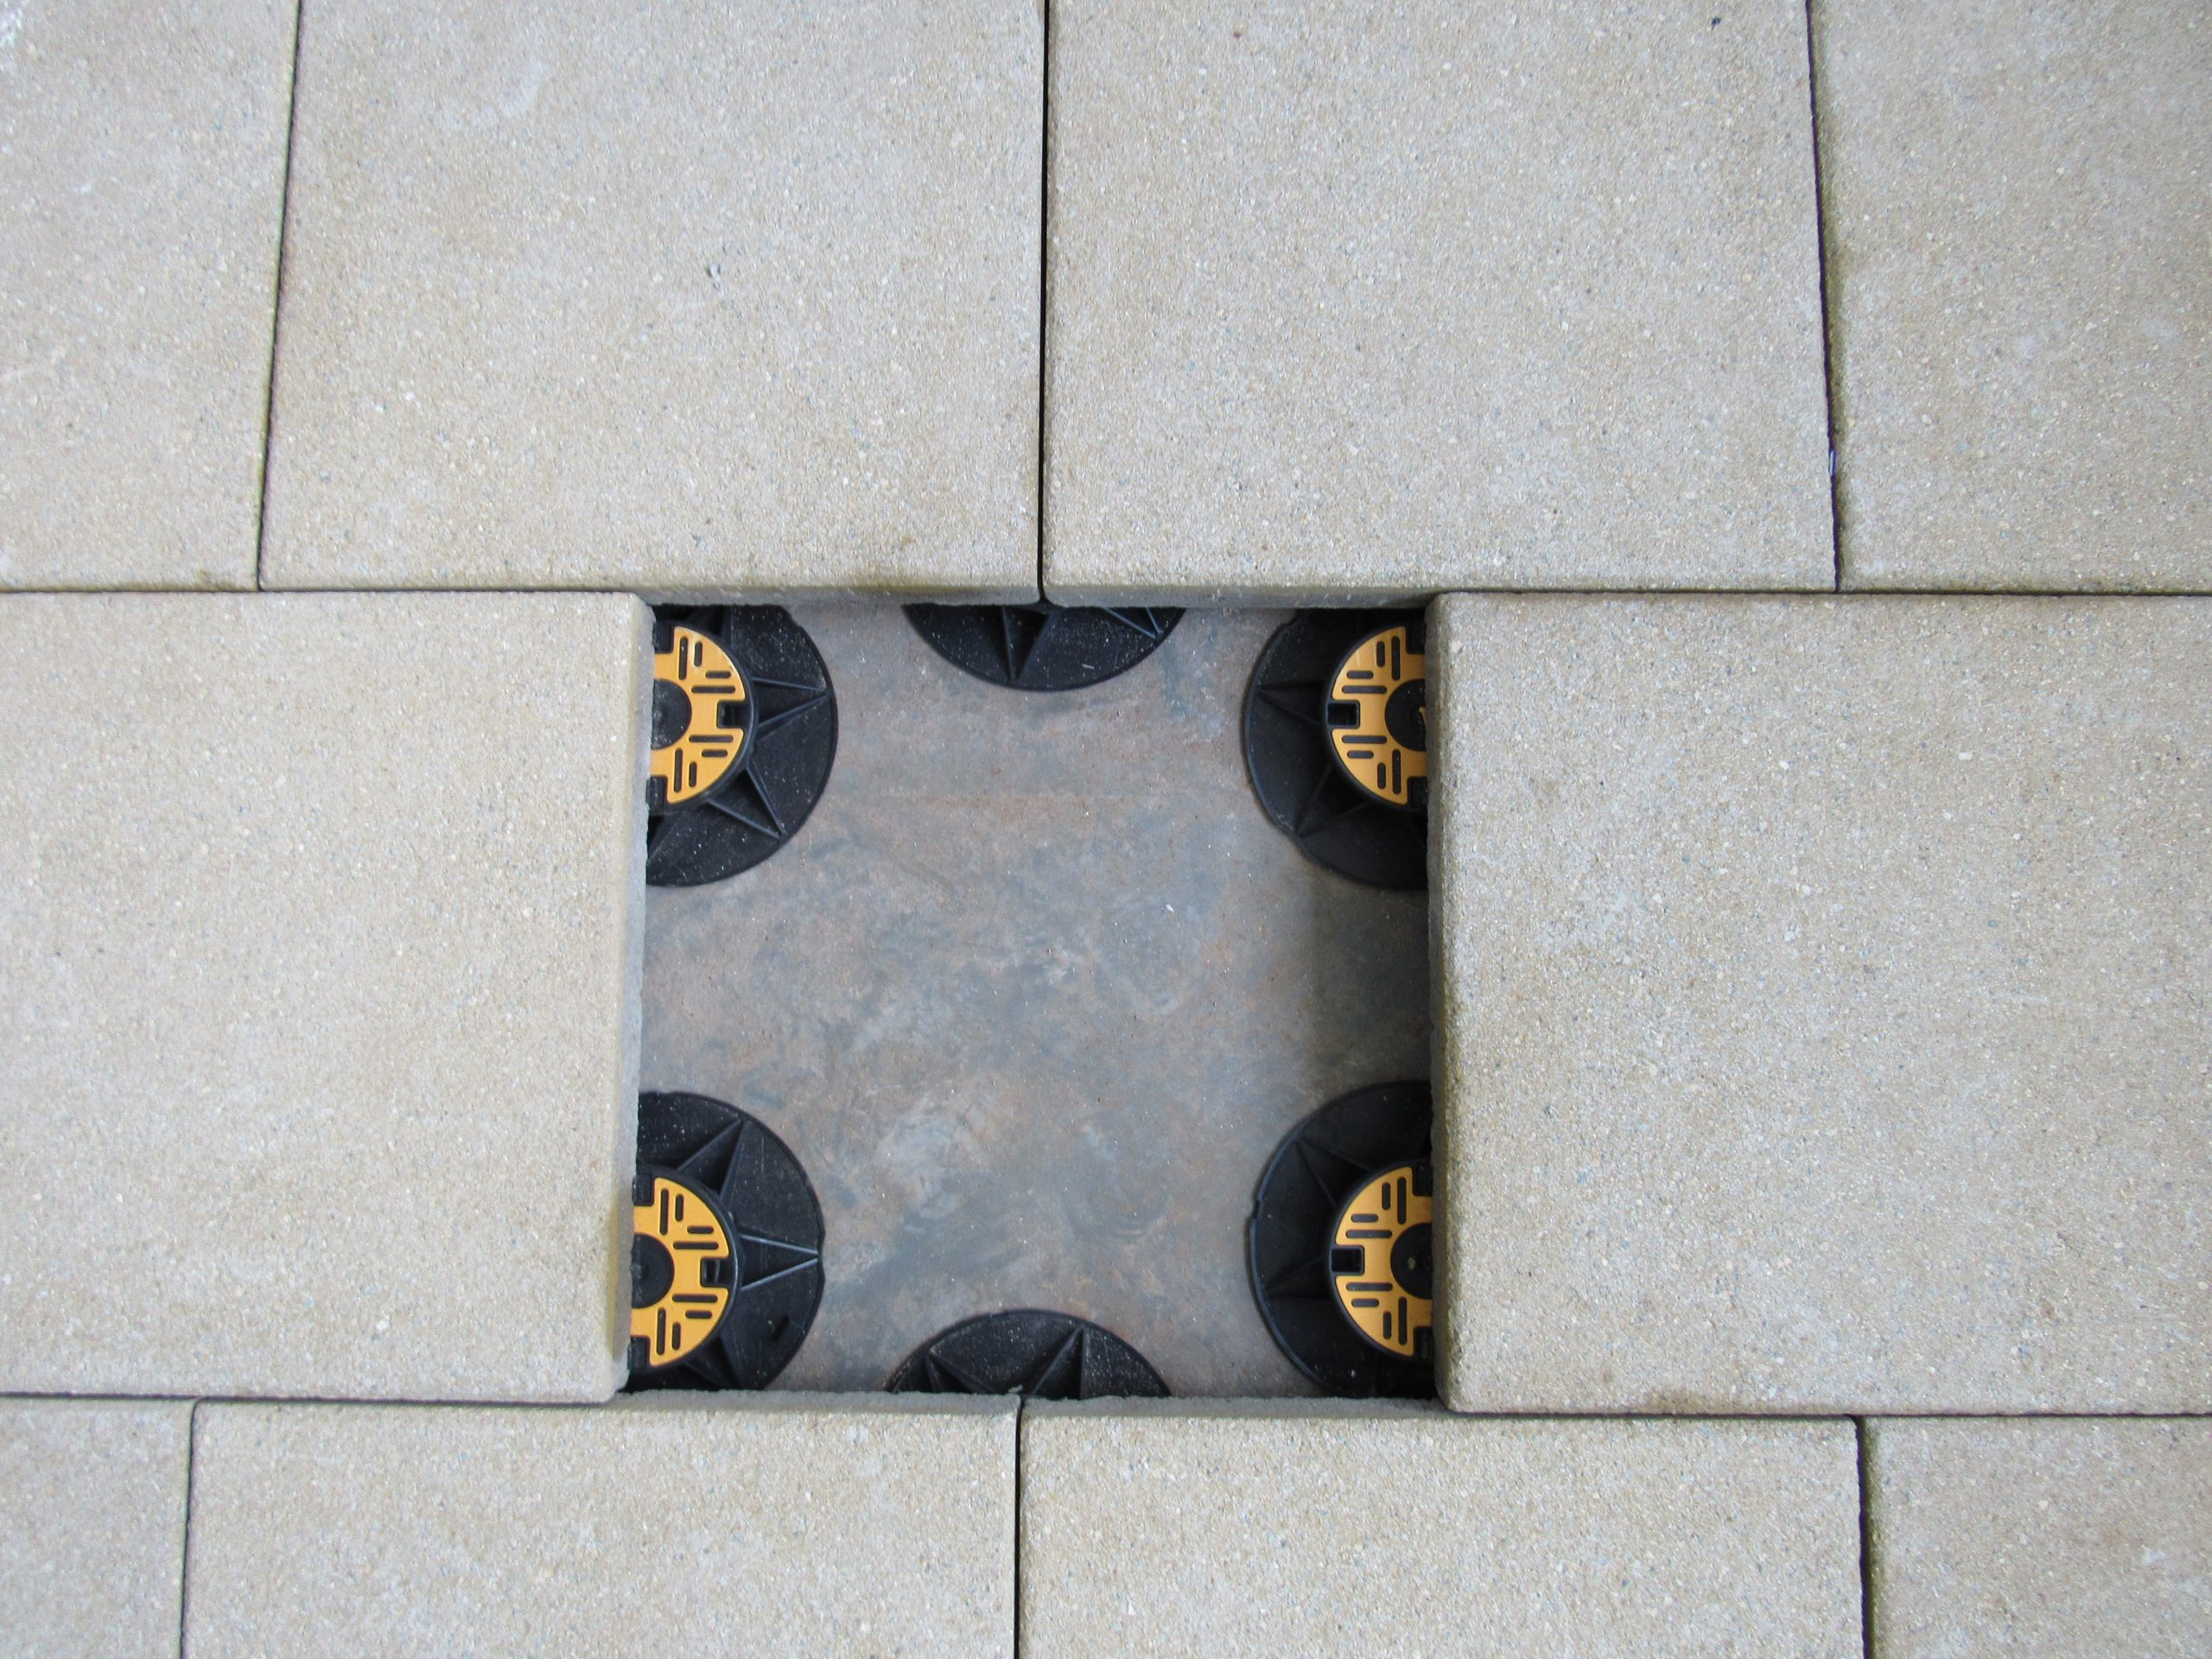 Universal pedestals for paving and decking - supporting paving slabs staggered pattern 4